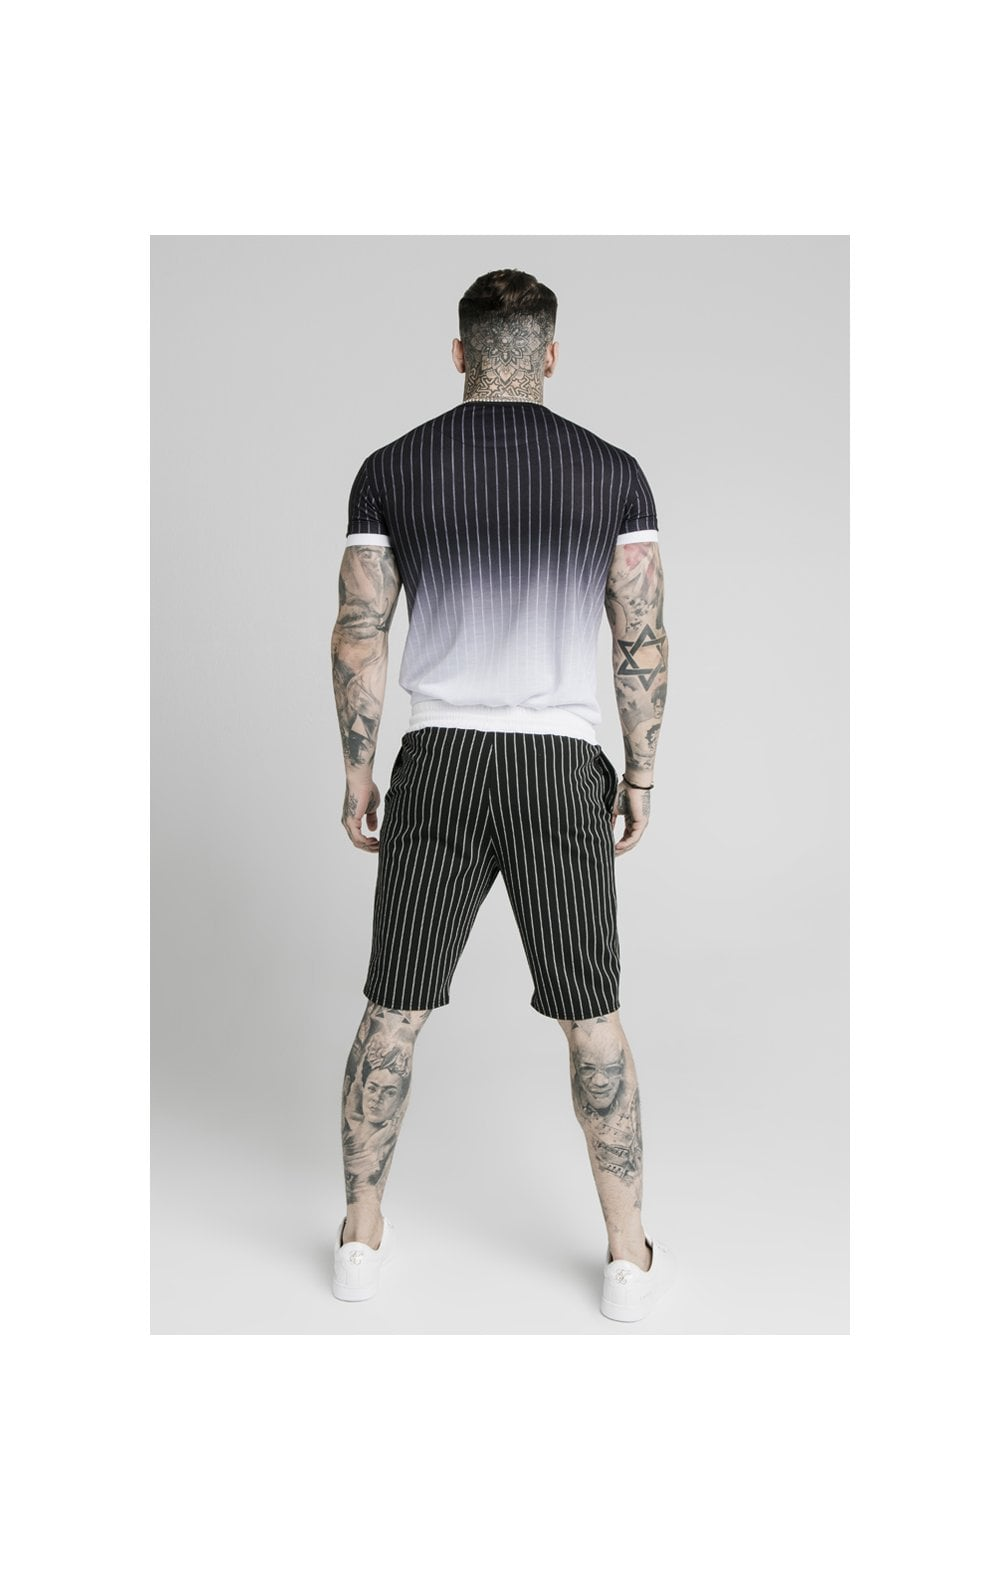 SikSilk Chino Elasticated Long Shorts - Black & White (5)